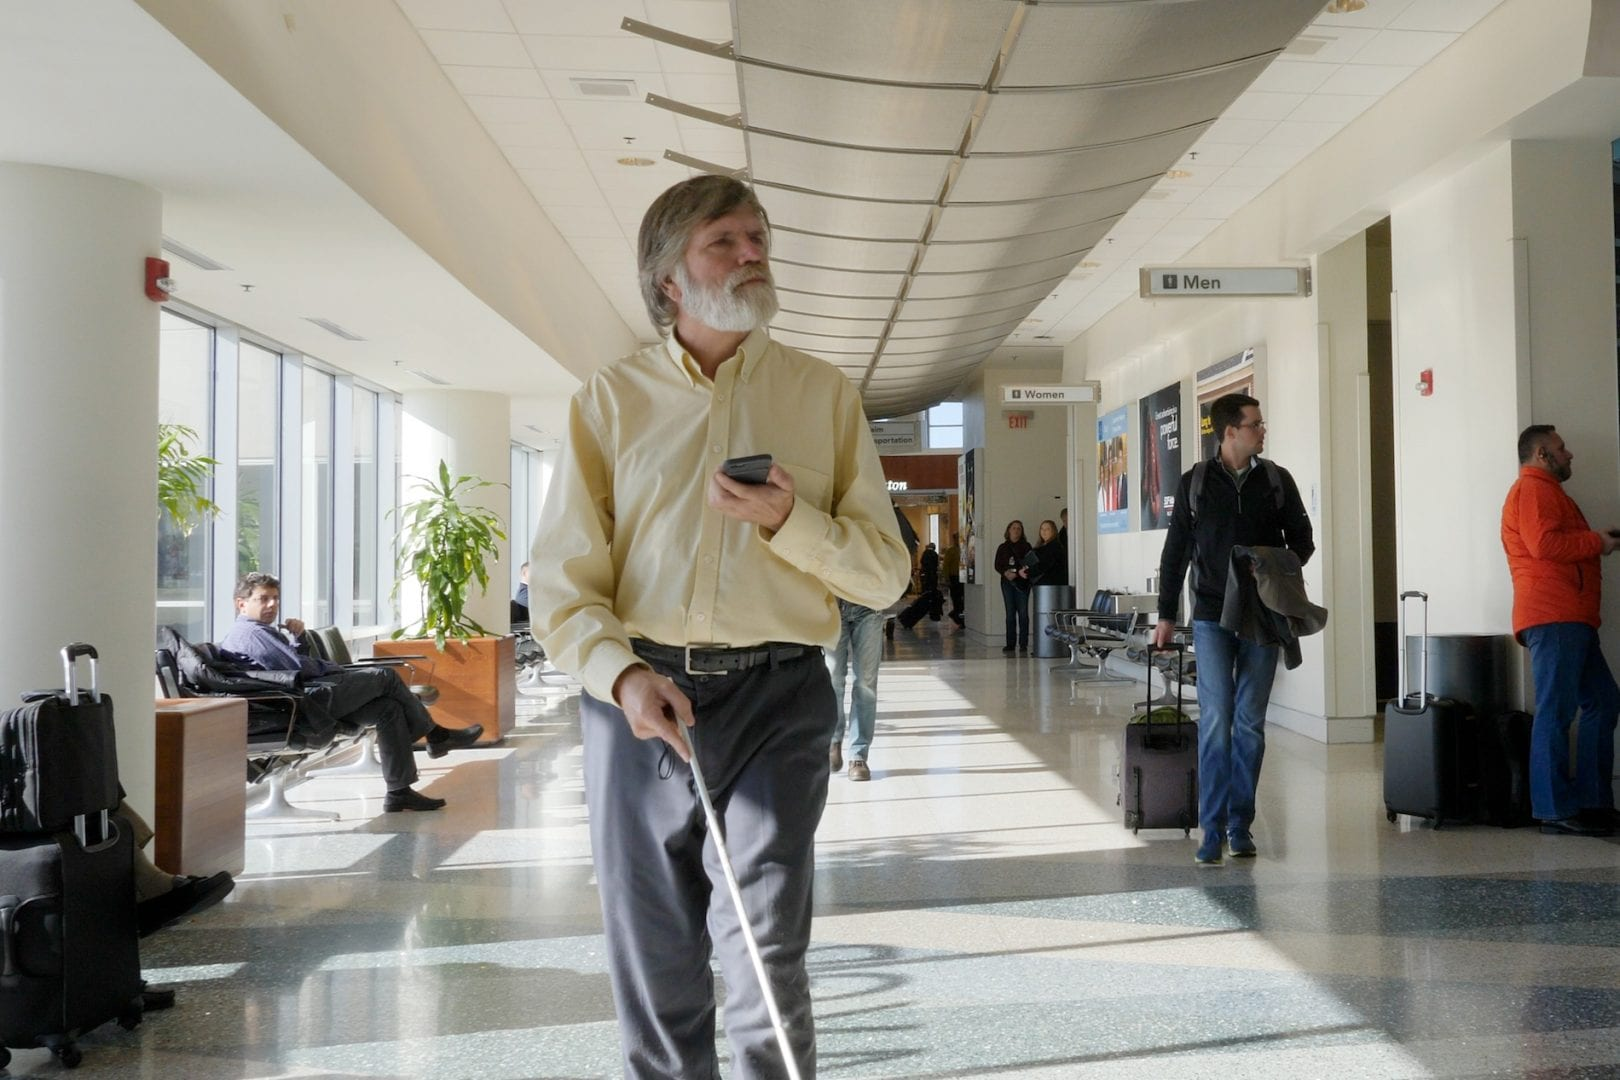 Man navigating through an airport with a white cane and cellphone